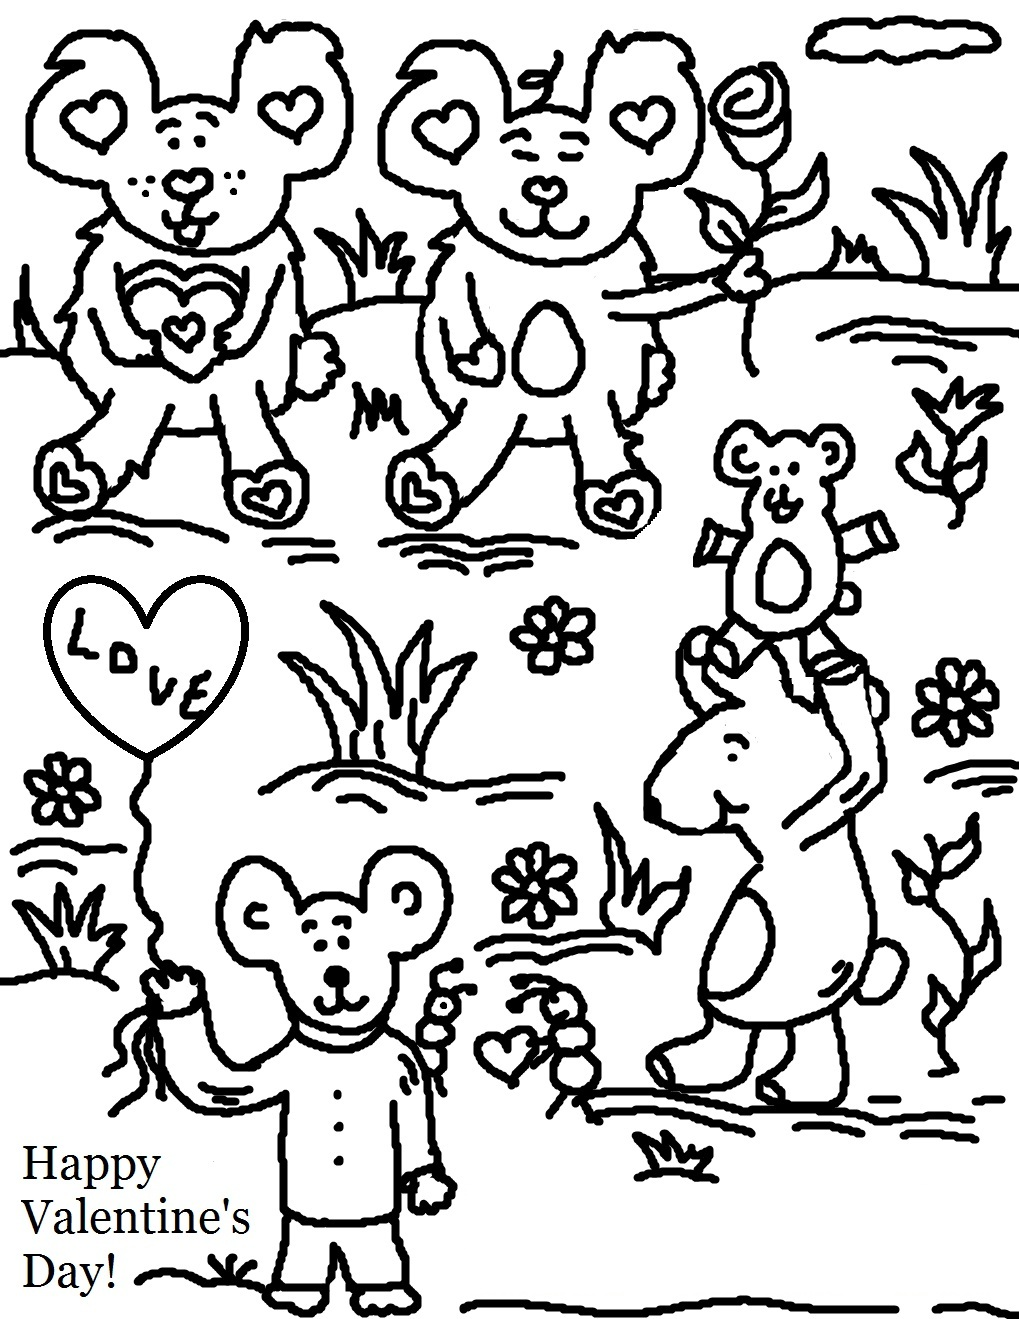 Valentine's Day Coloring Pages For School